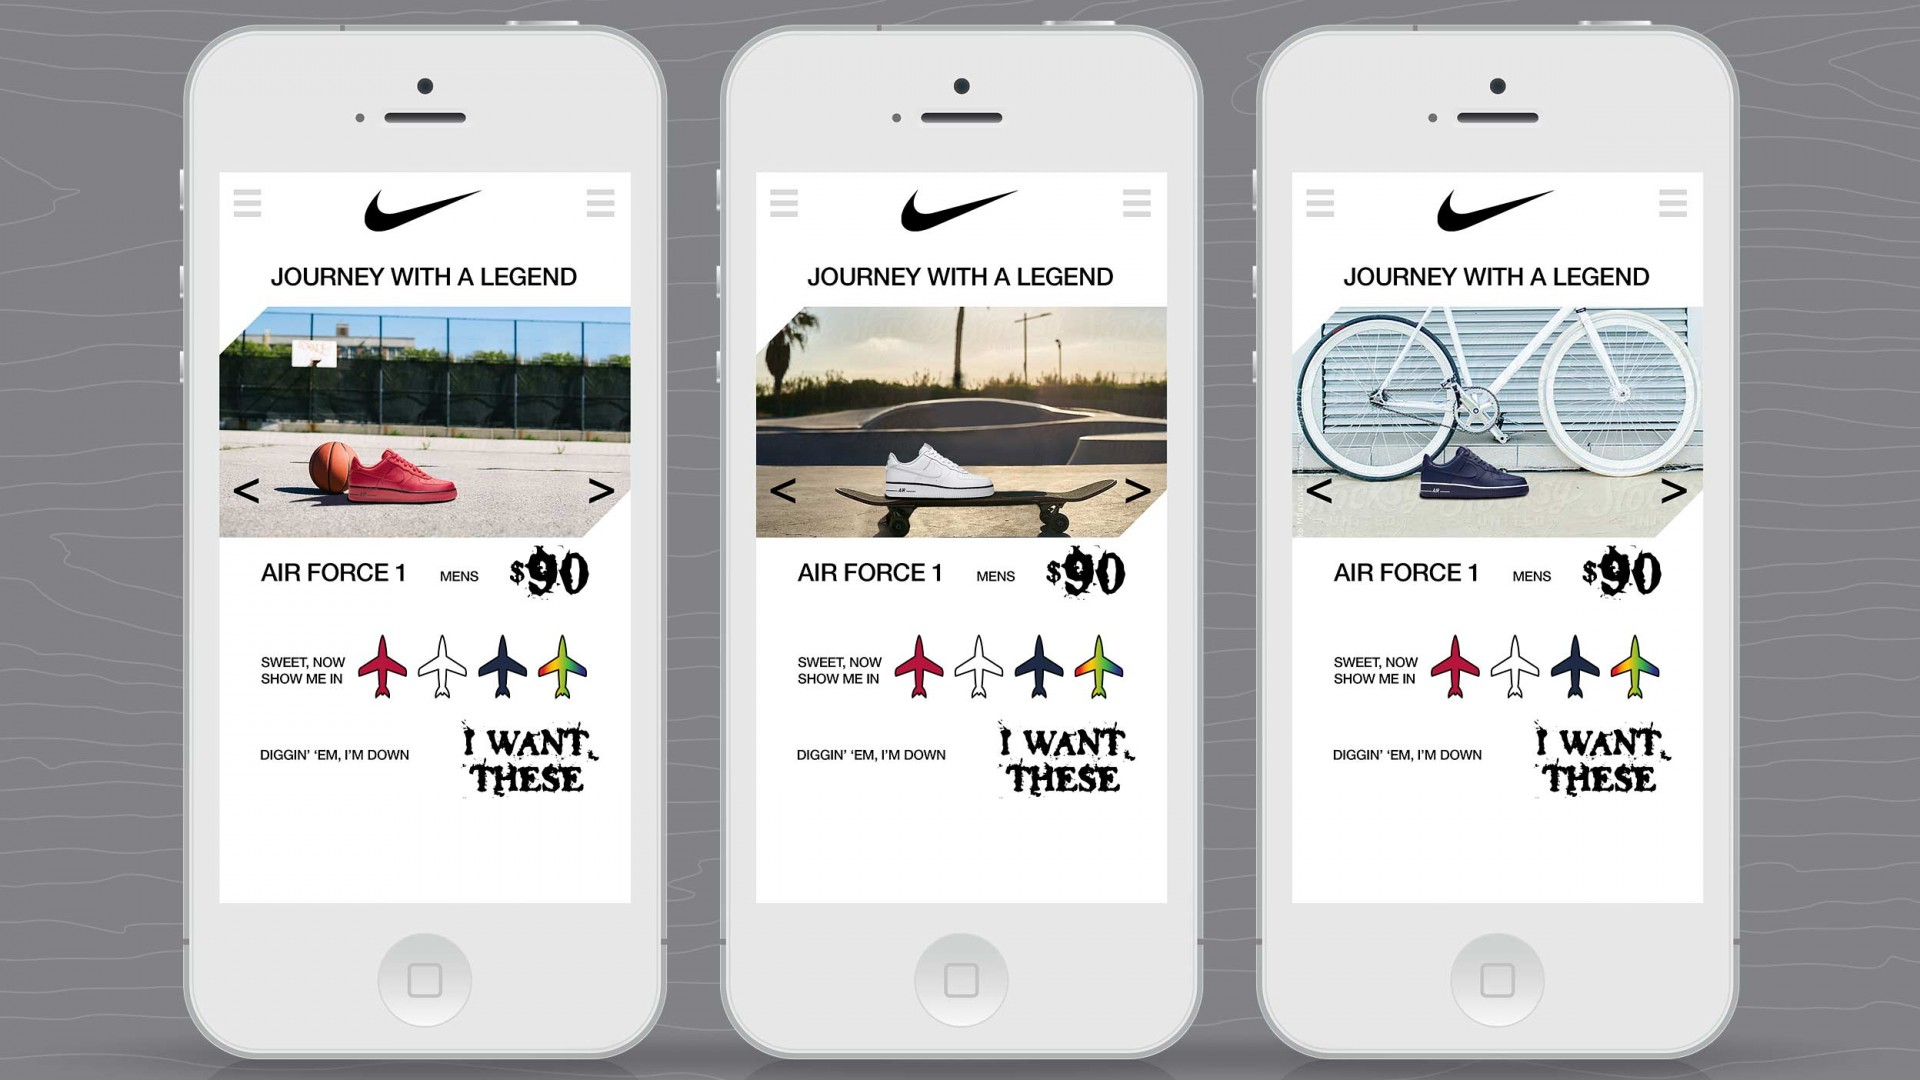 Journey With A Legend, Nike UX/UI, mobile phone views.